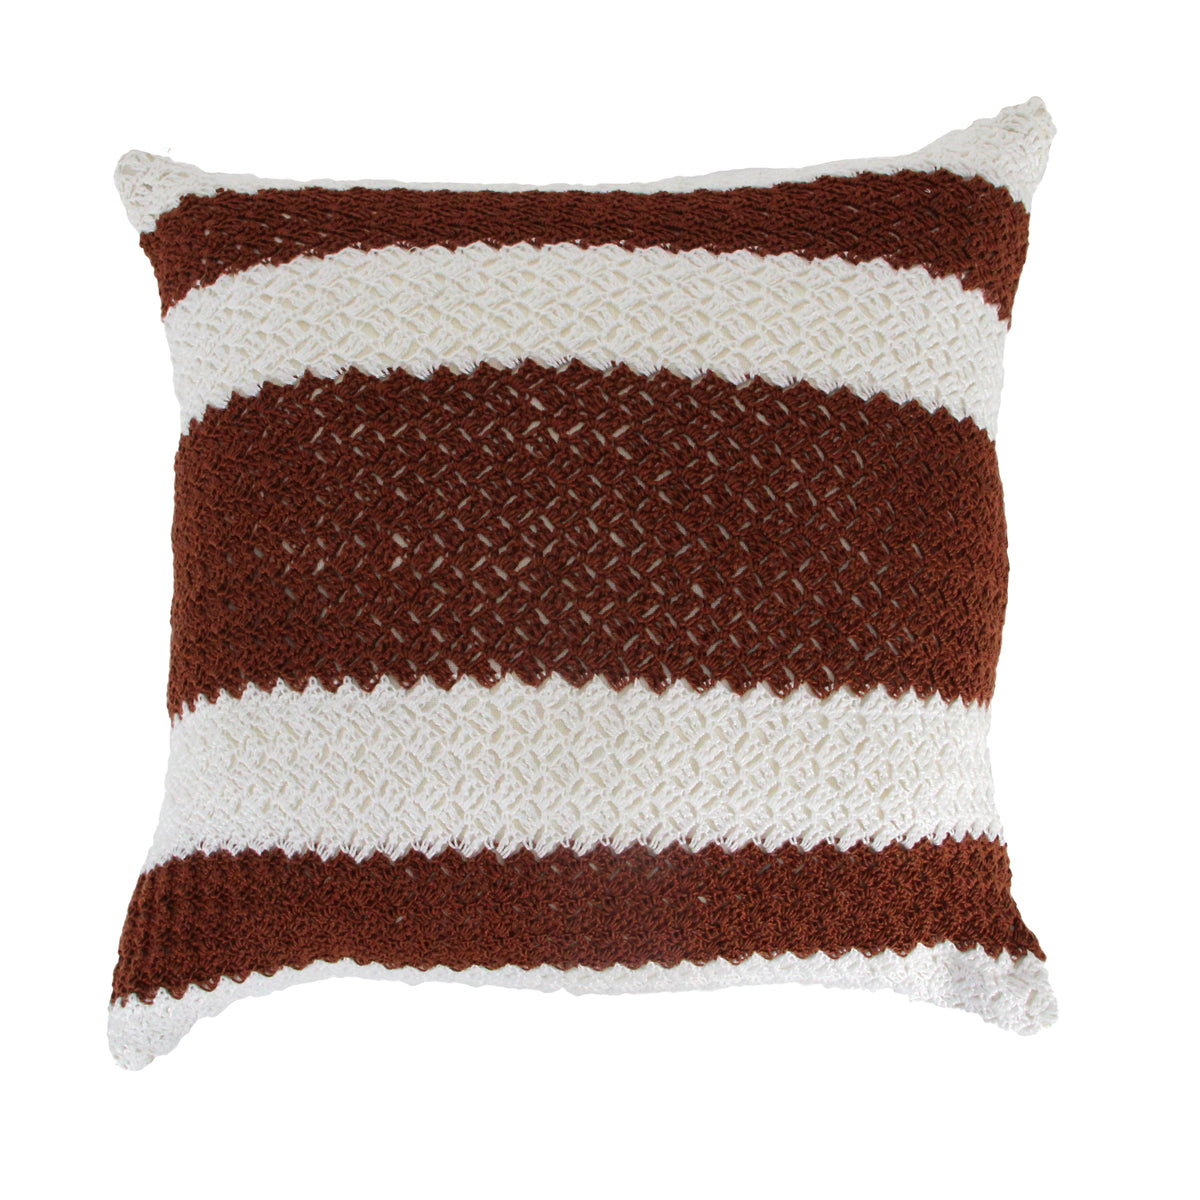 Hug Crochet Stripe Cushion Cover